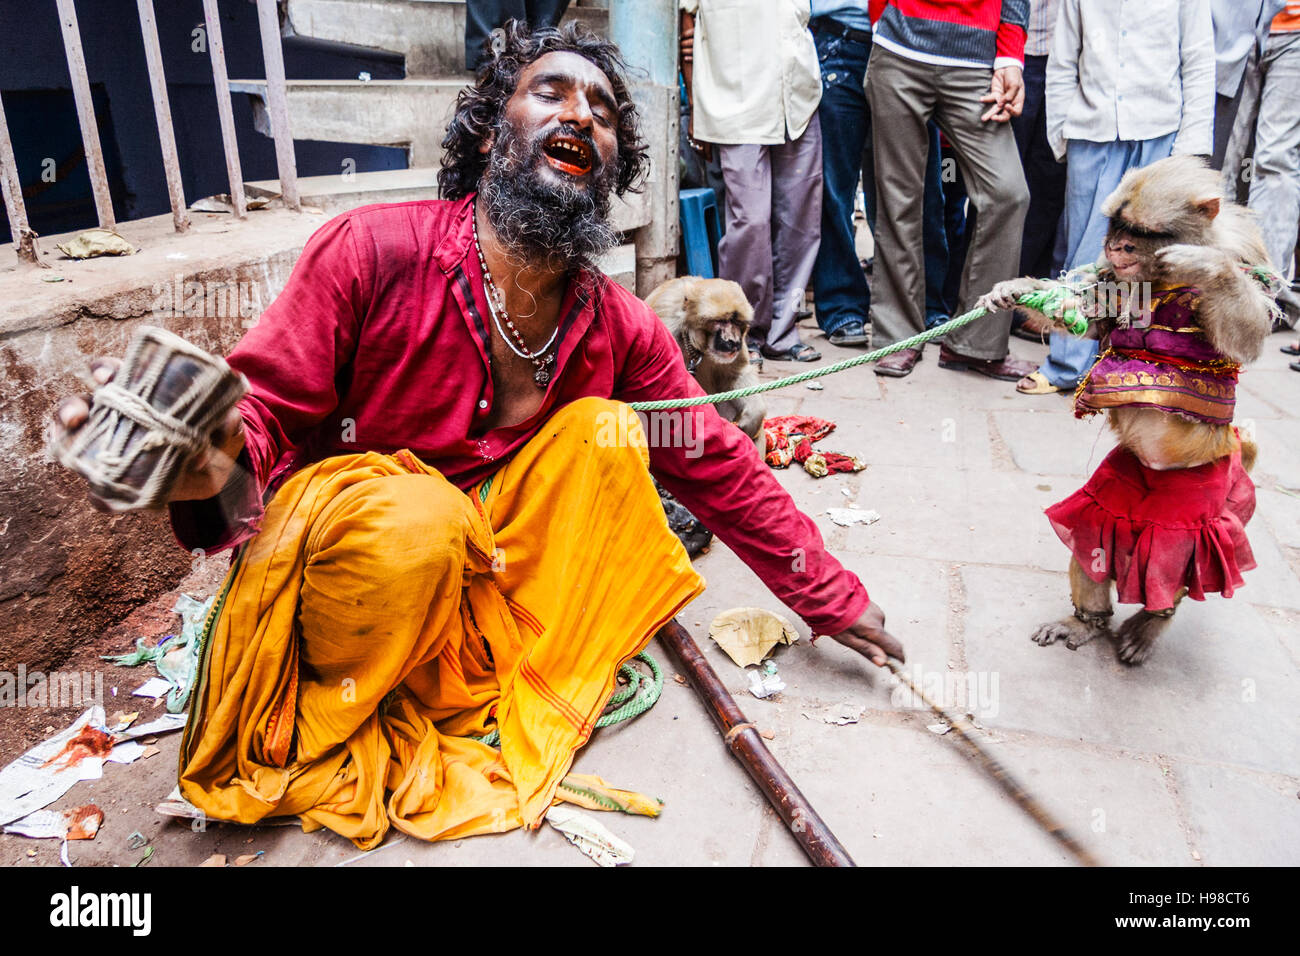 Animal trainer puppeteer and monkey performing at the streets of Varanasi, India - Stock Image